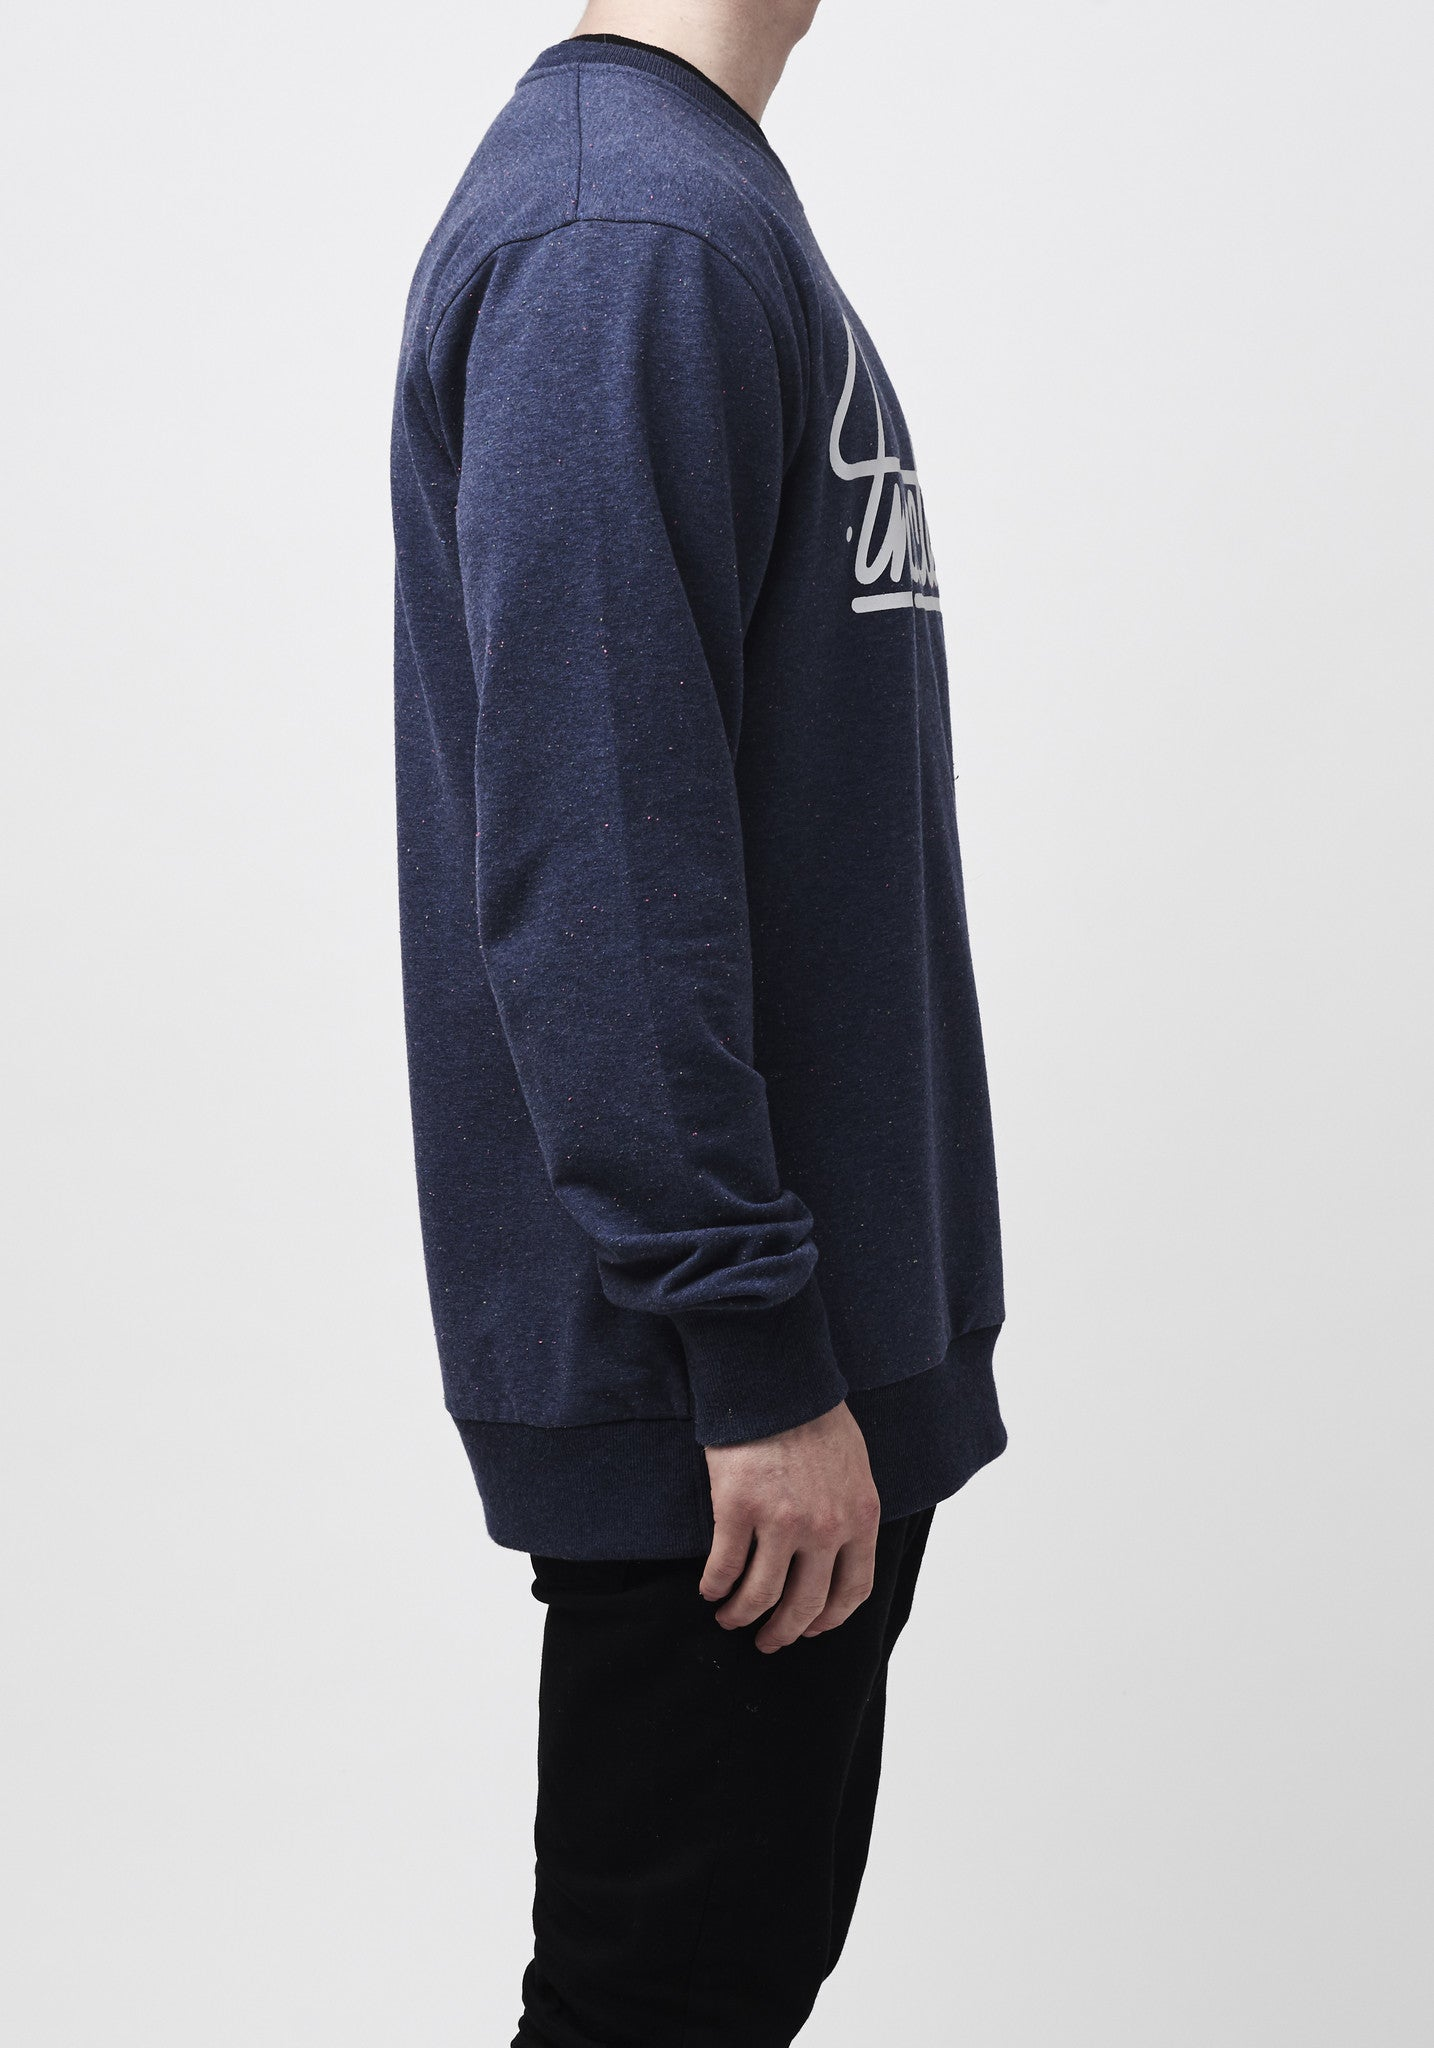 Autograph Sweatshirt - Galaxy Blue